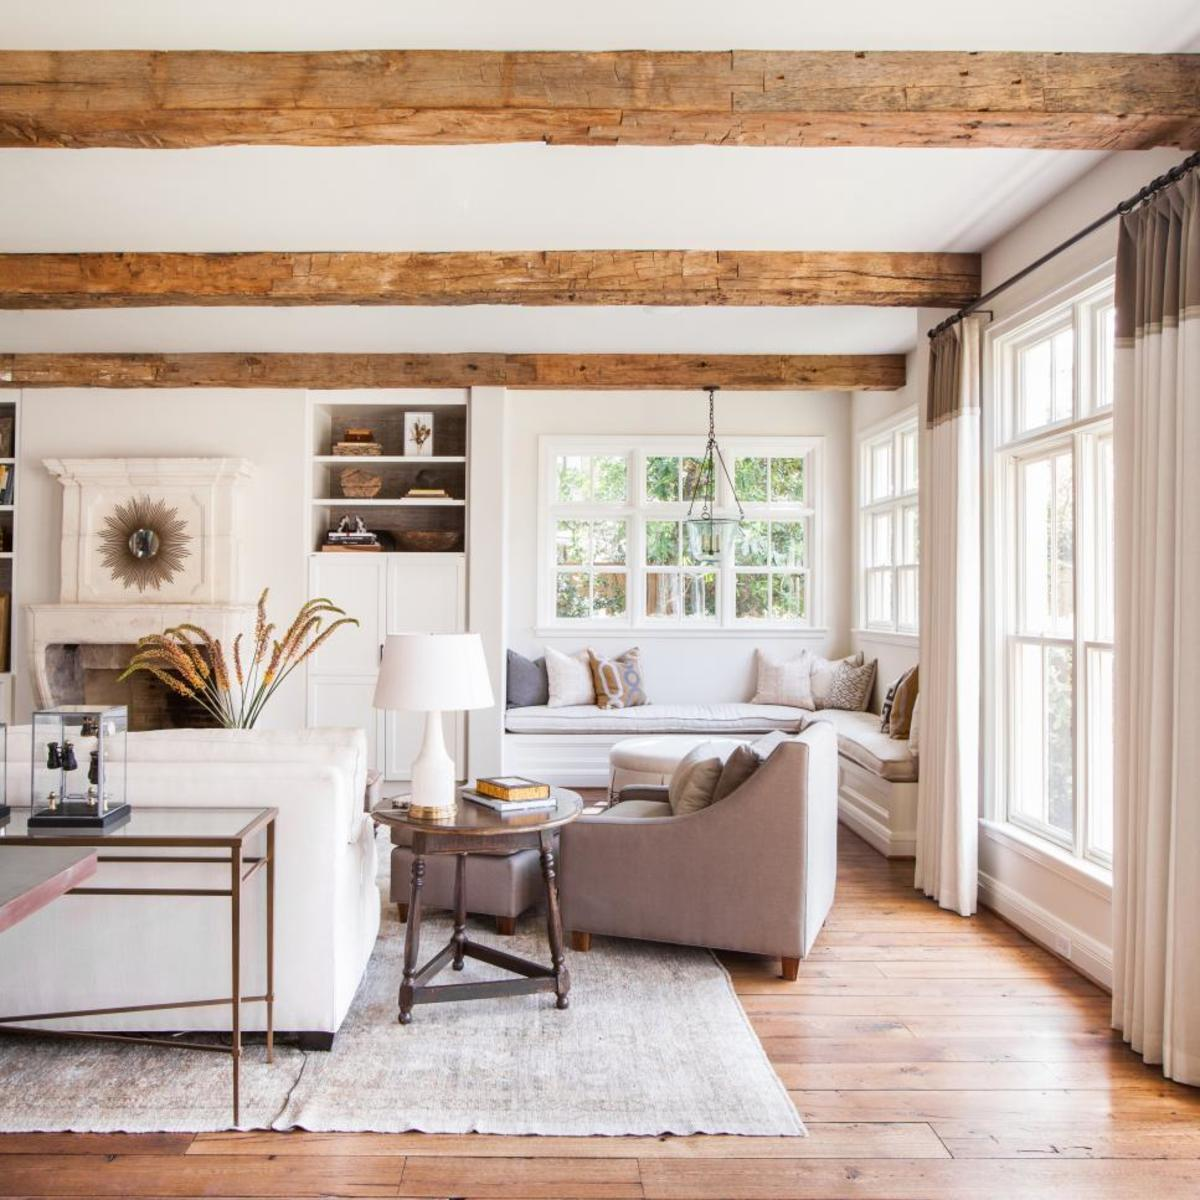 The rugs and the curtains in the window and the white furniture and wood beams and the wood floors!